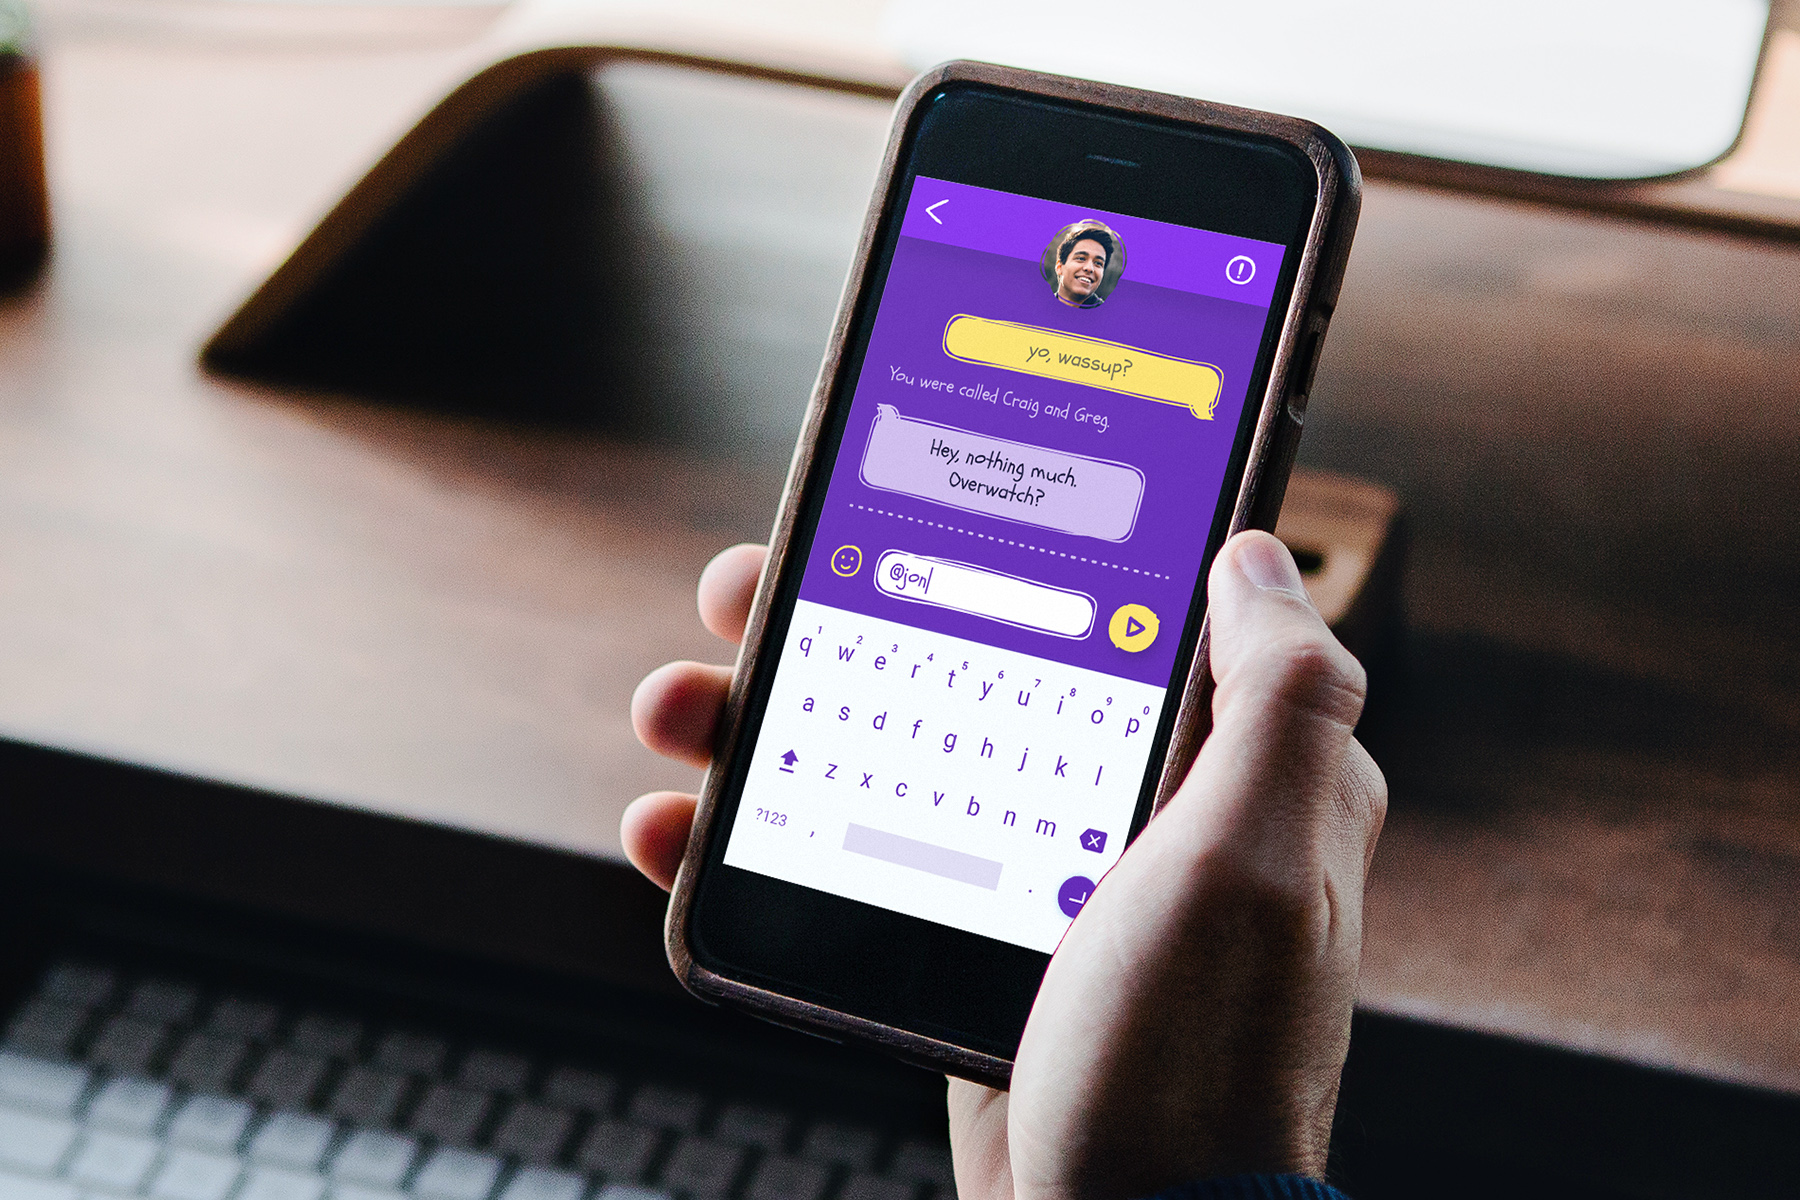 What's My Name? - Uncomfortable messaging app